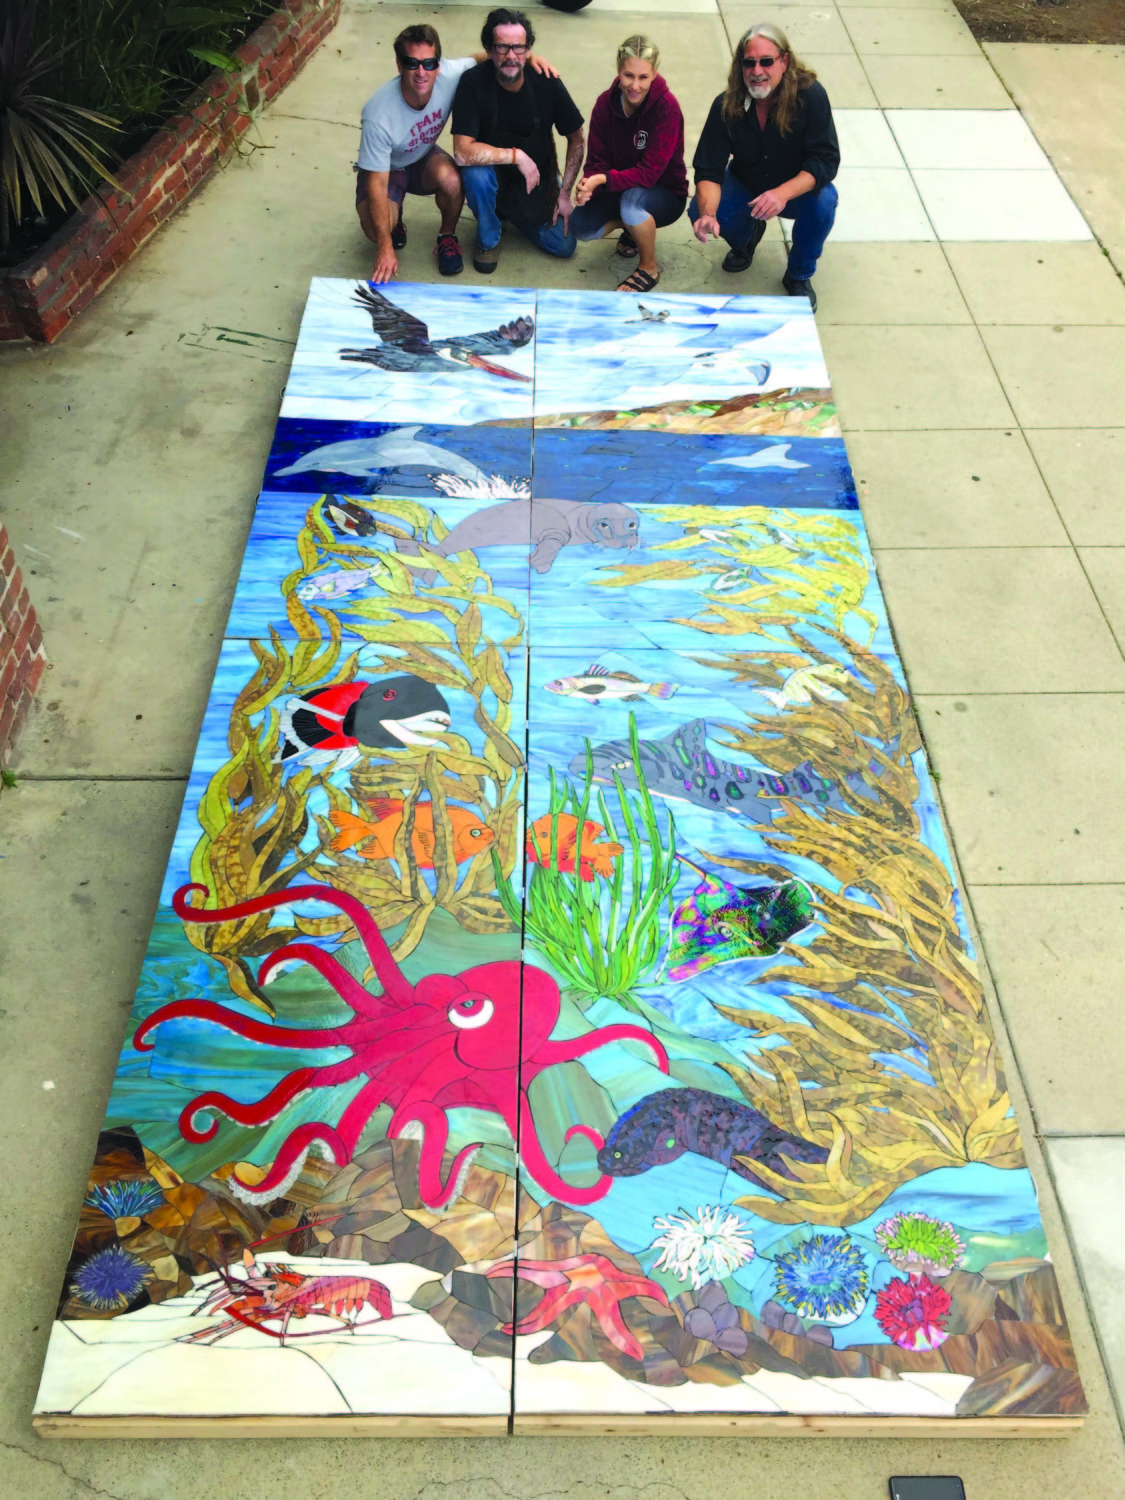 Nonprofit to loan mosaic to city for new lifeguard station